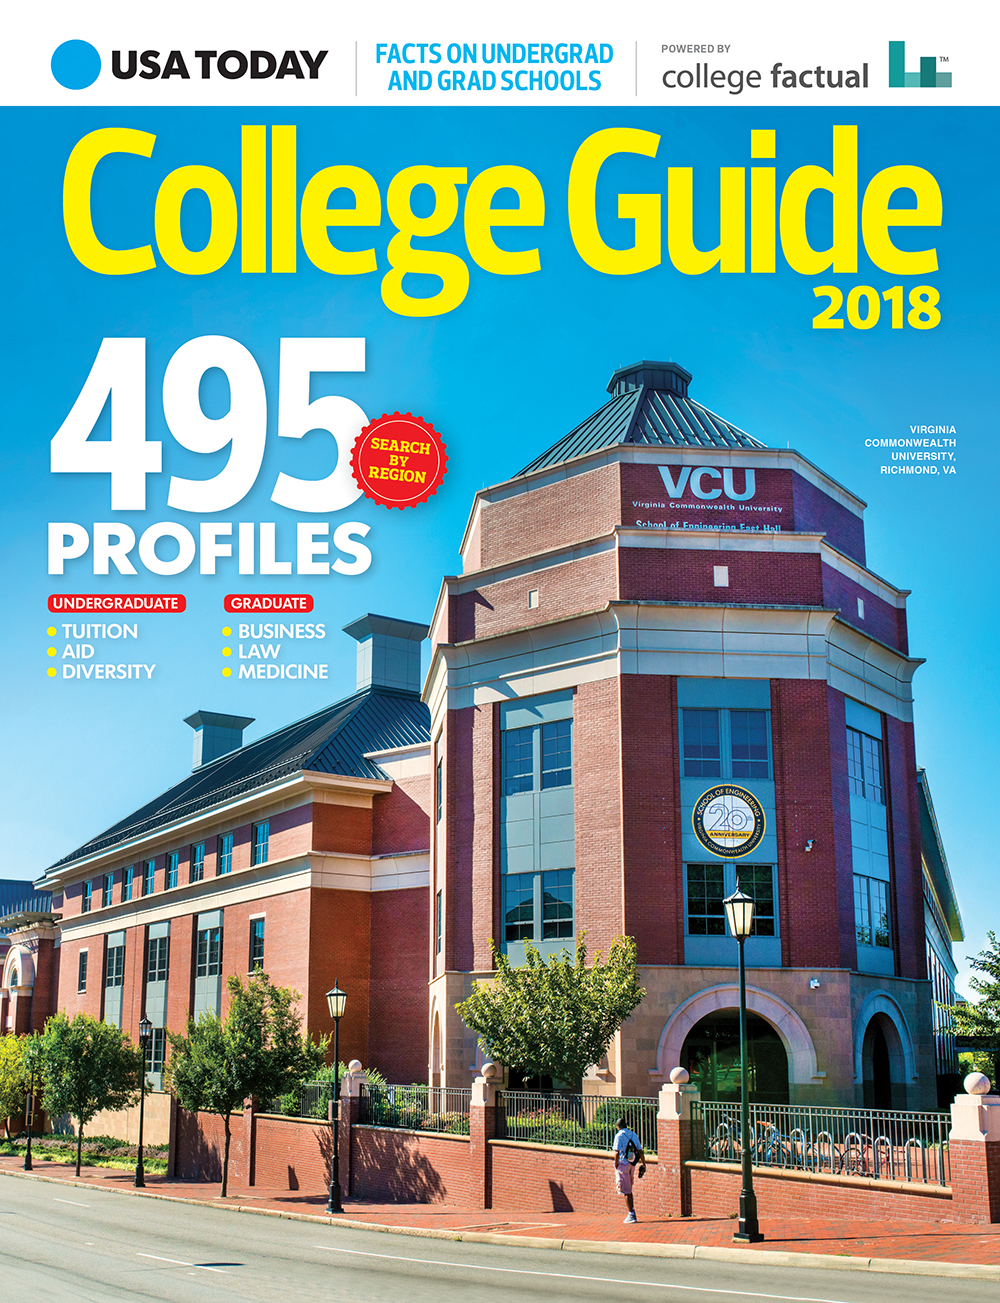 College Guide 2018 Cover.jpg